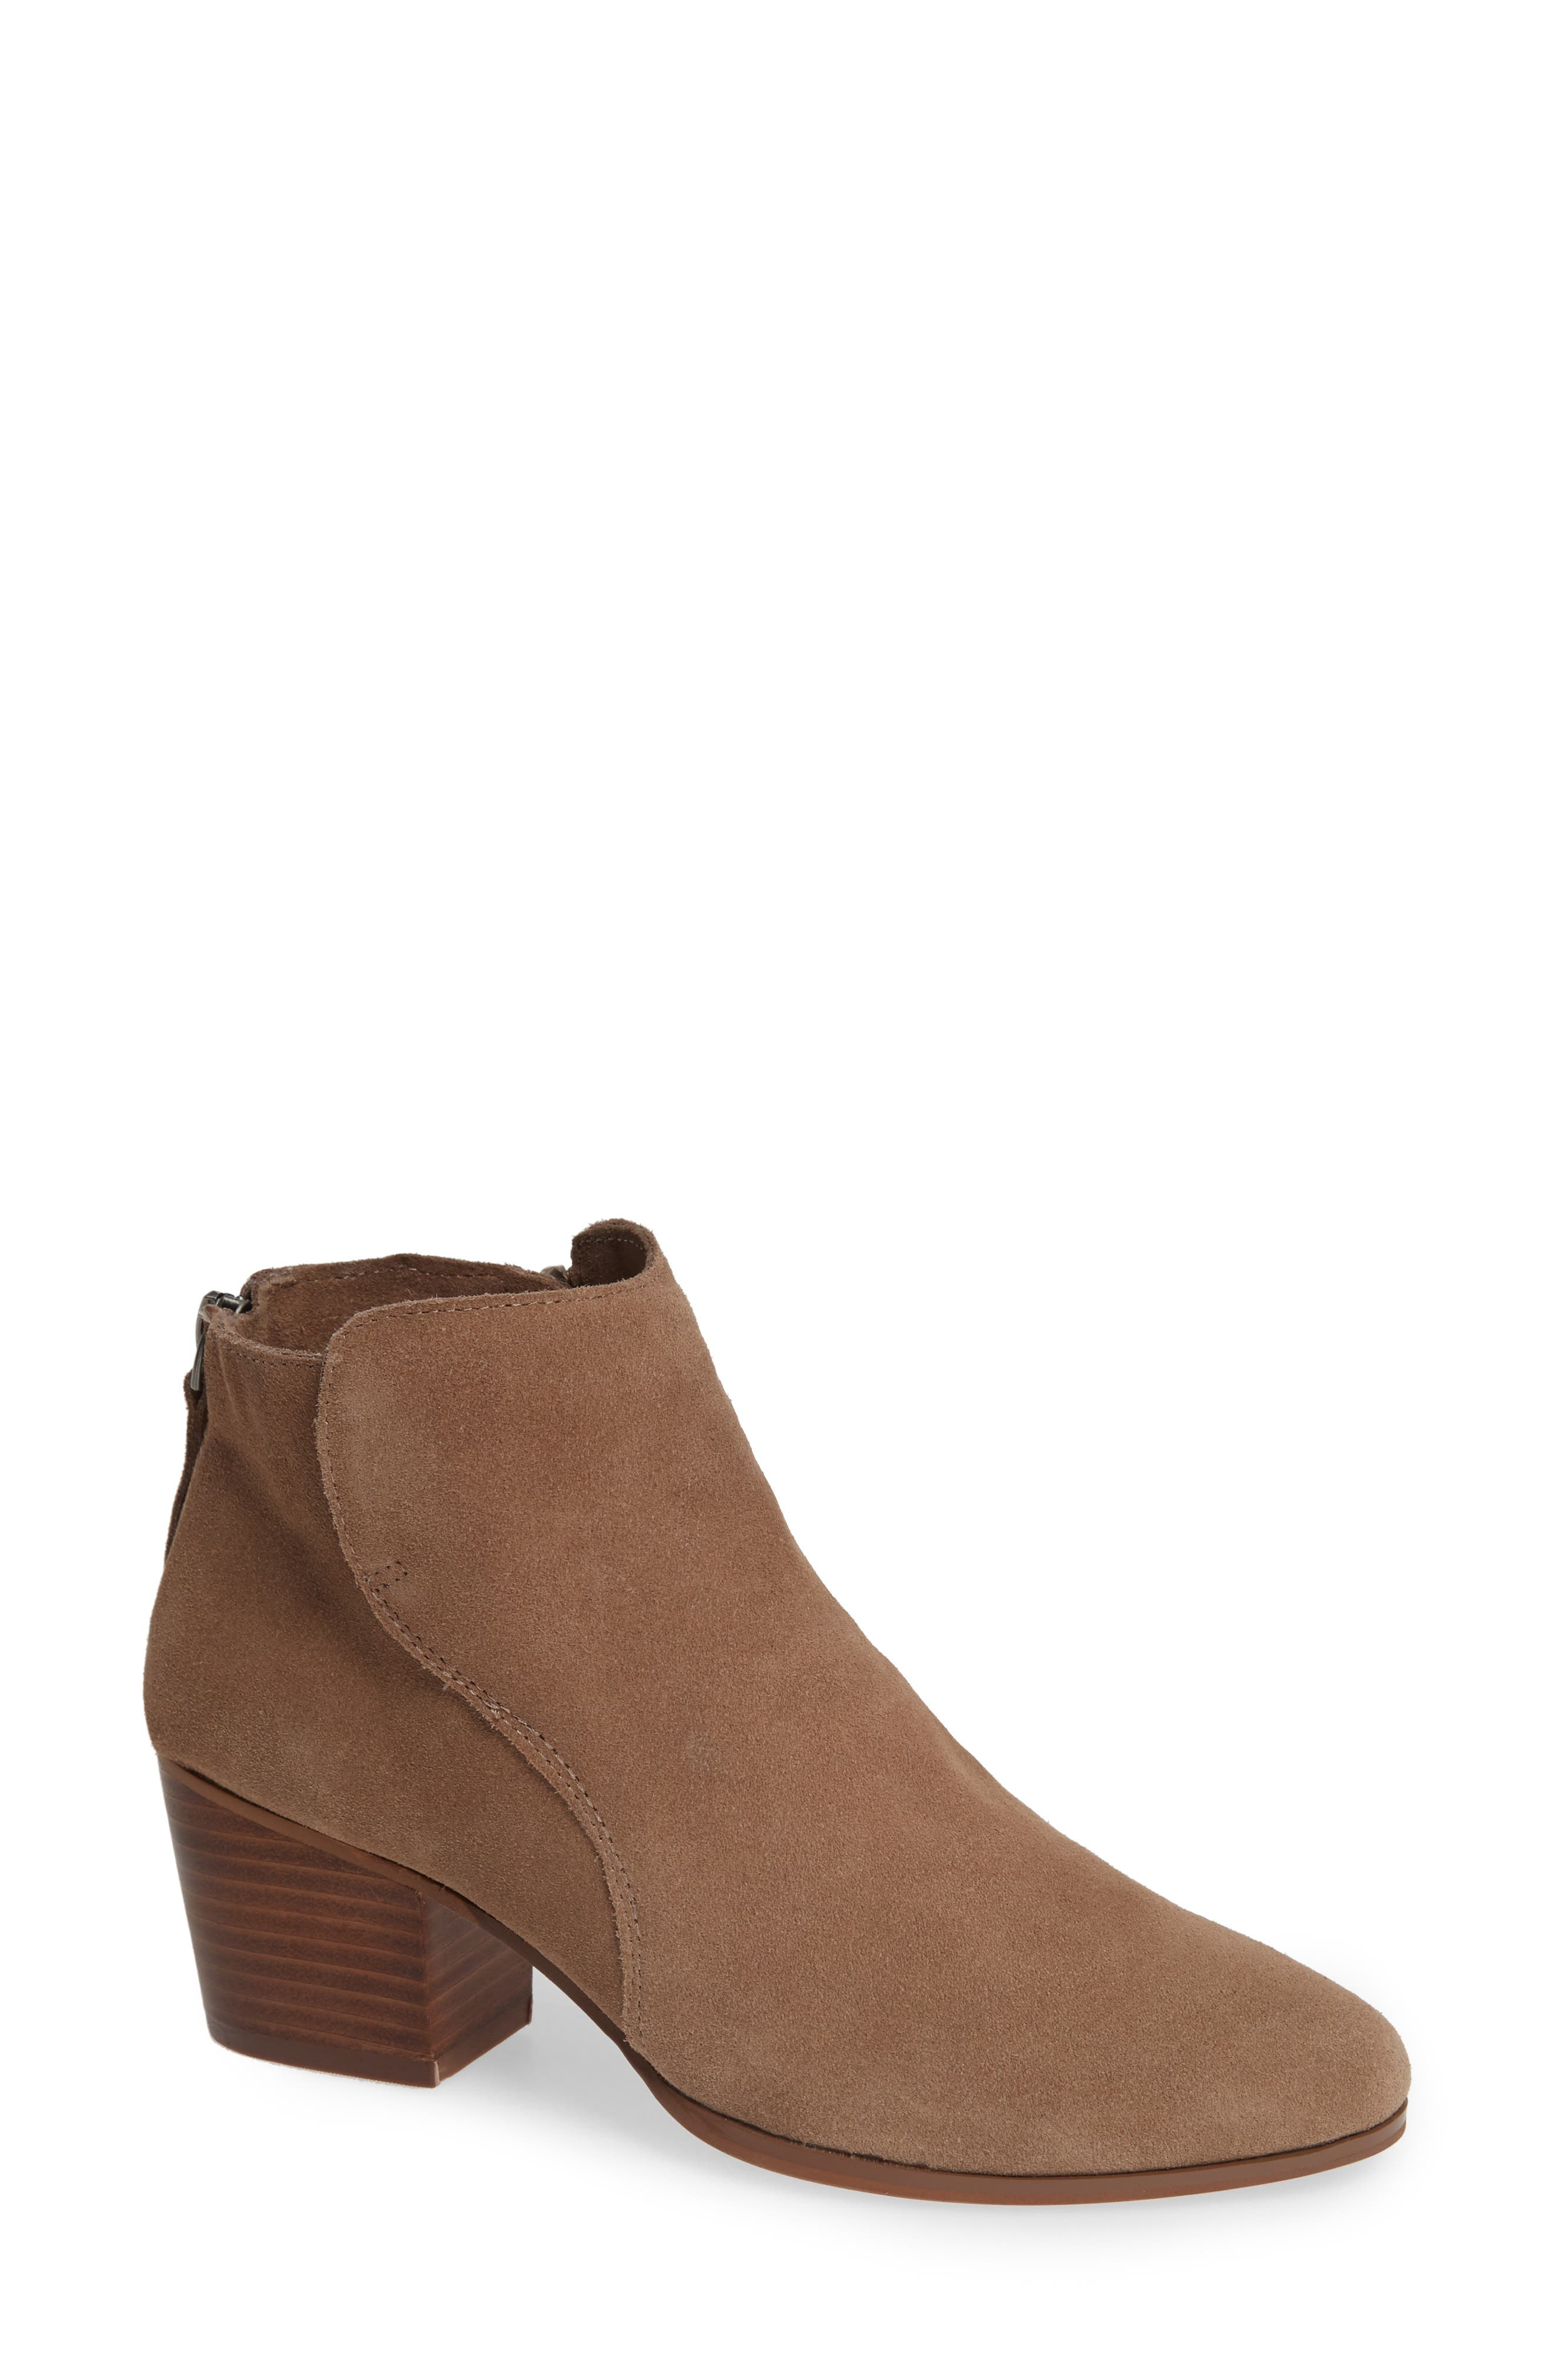 River Bootie,                         Main,                         color, NEW TAUPE SUEDE